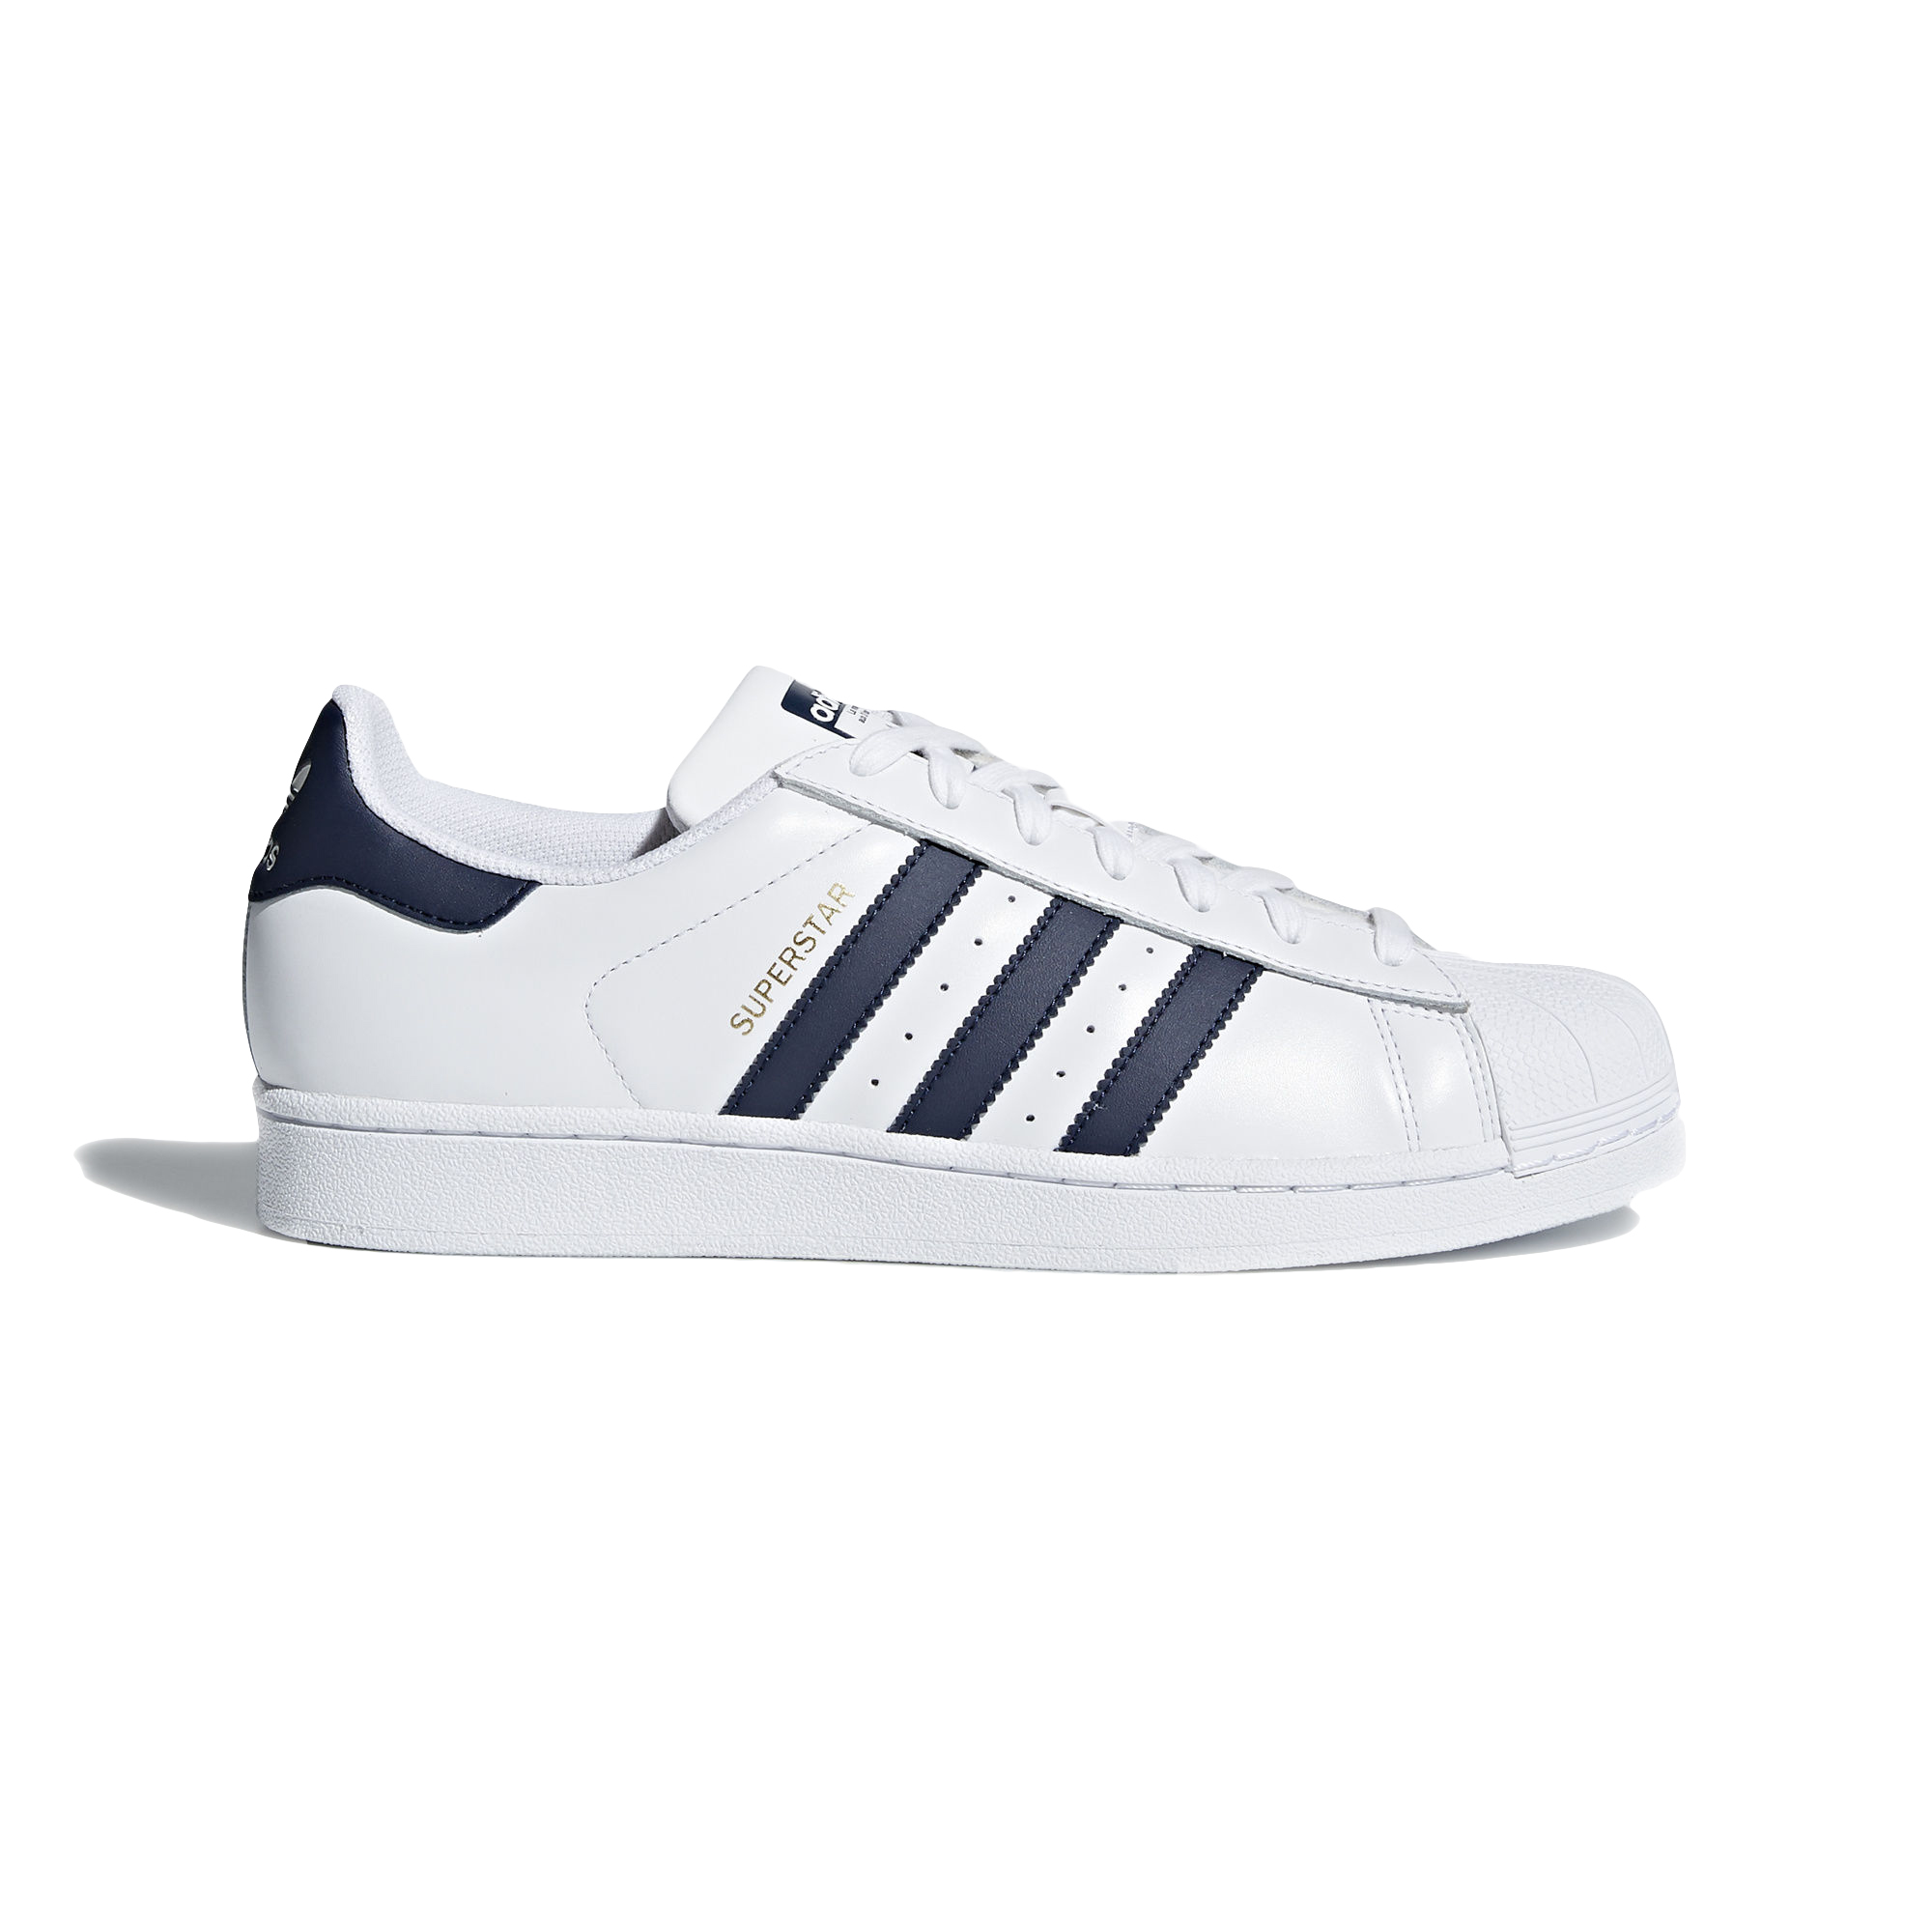 NS. 303413 ADIDAS ORIGINALS SUPERSTAR 11